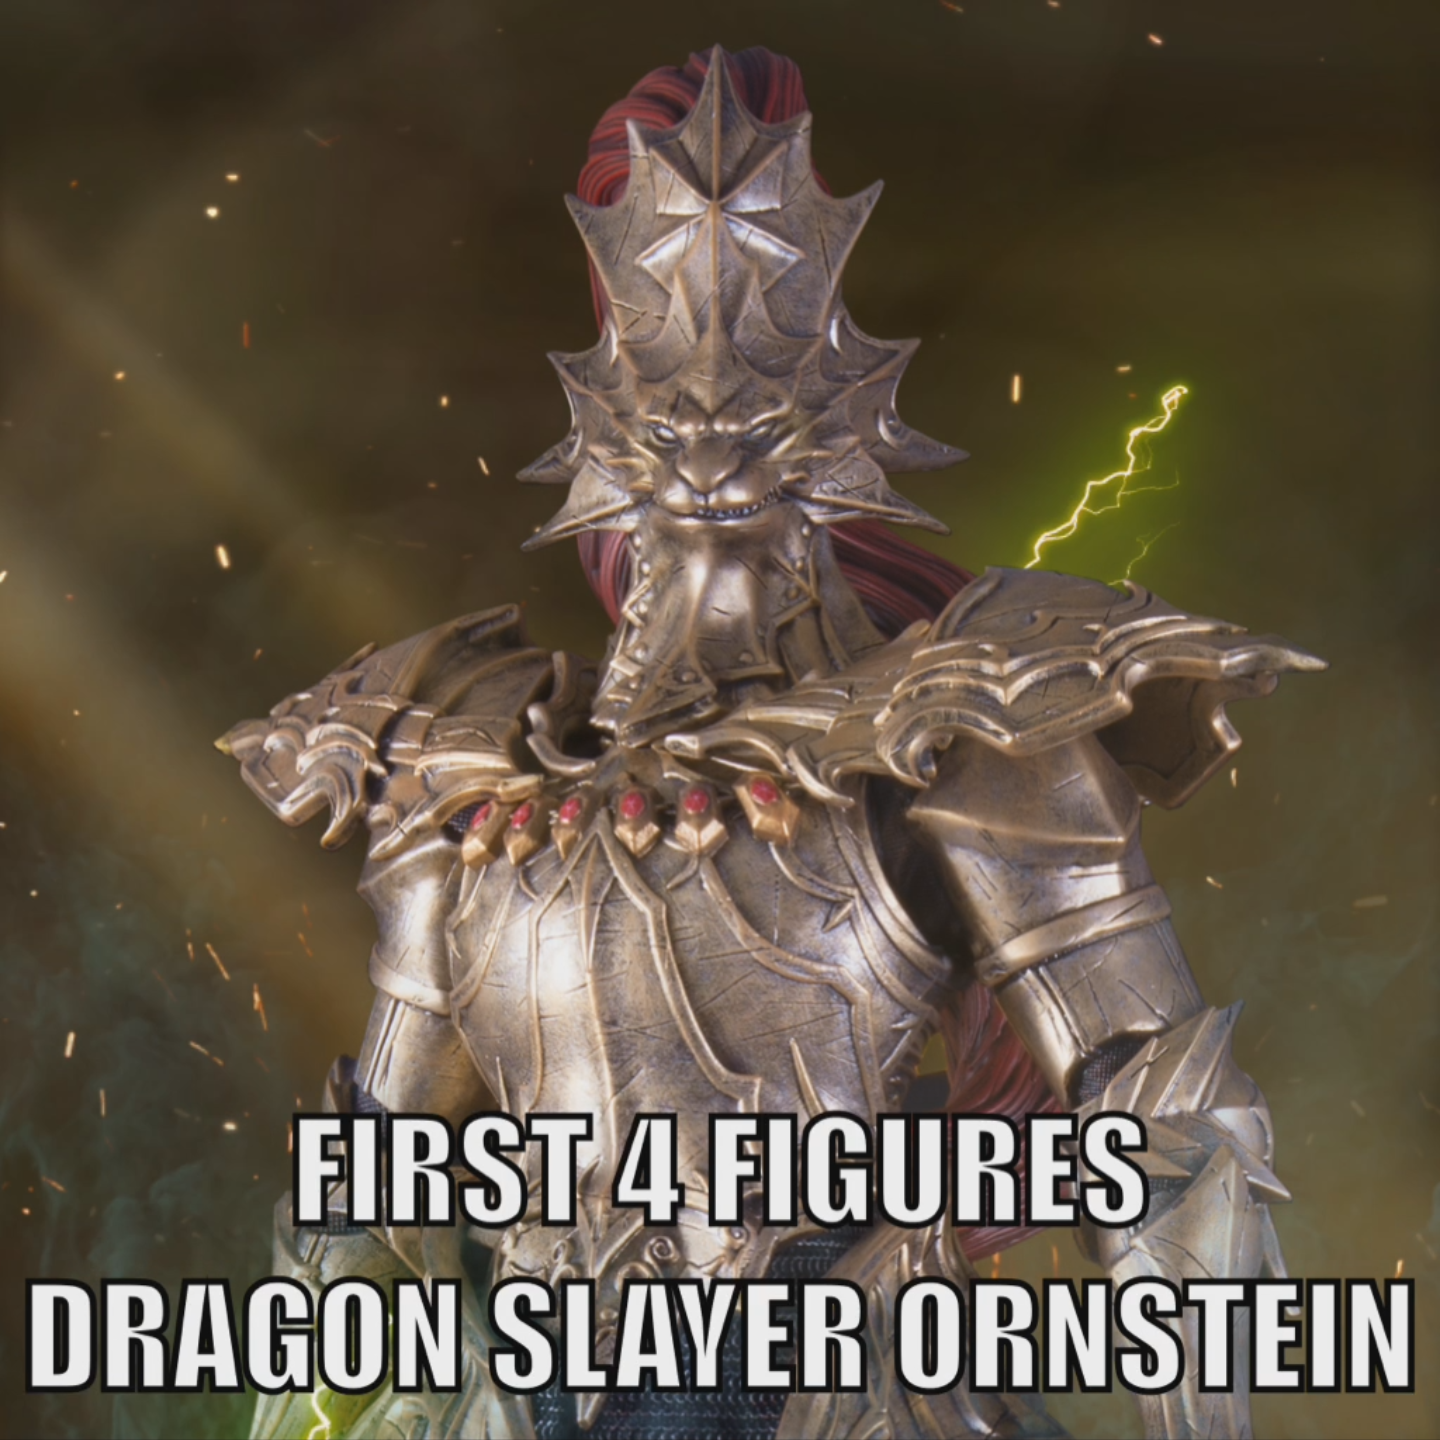 Dragon Slayer Ornstein Facebook Avatar